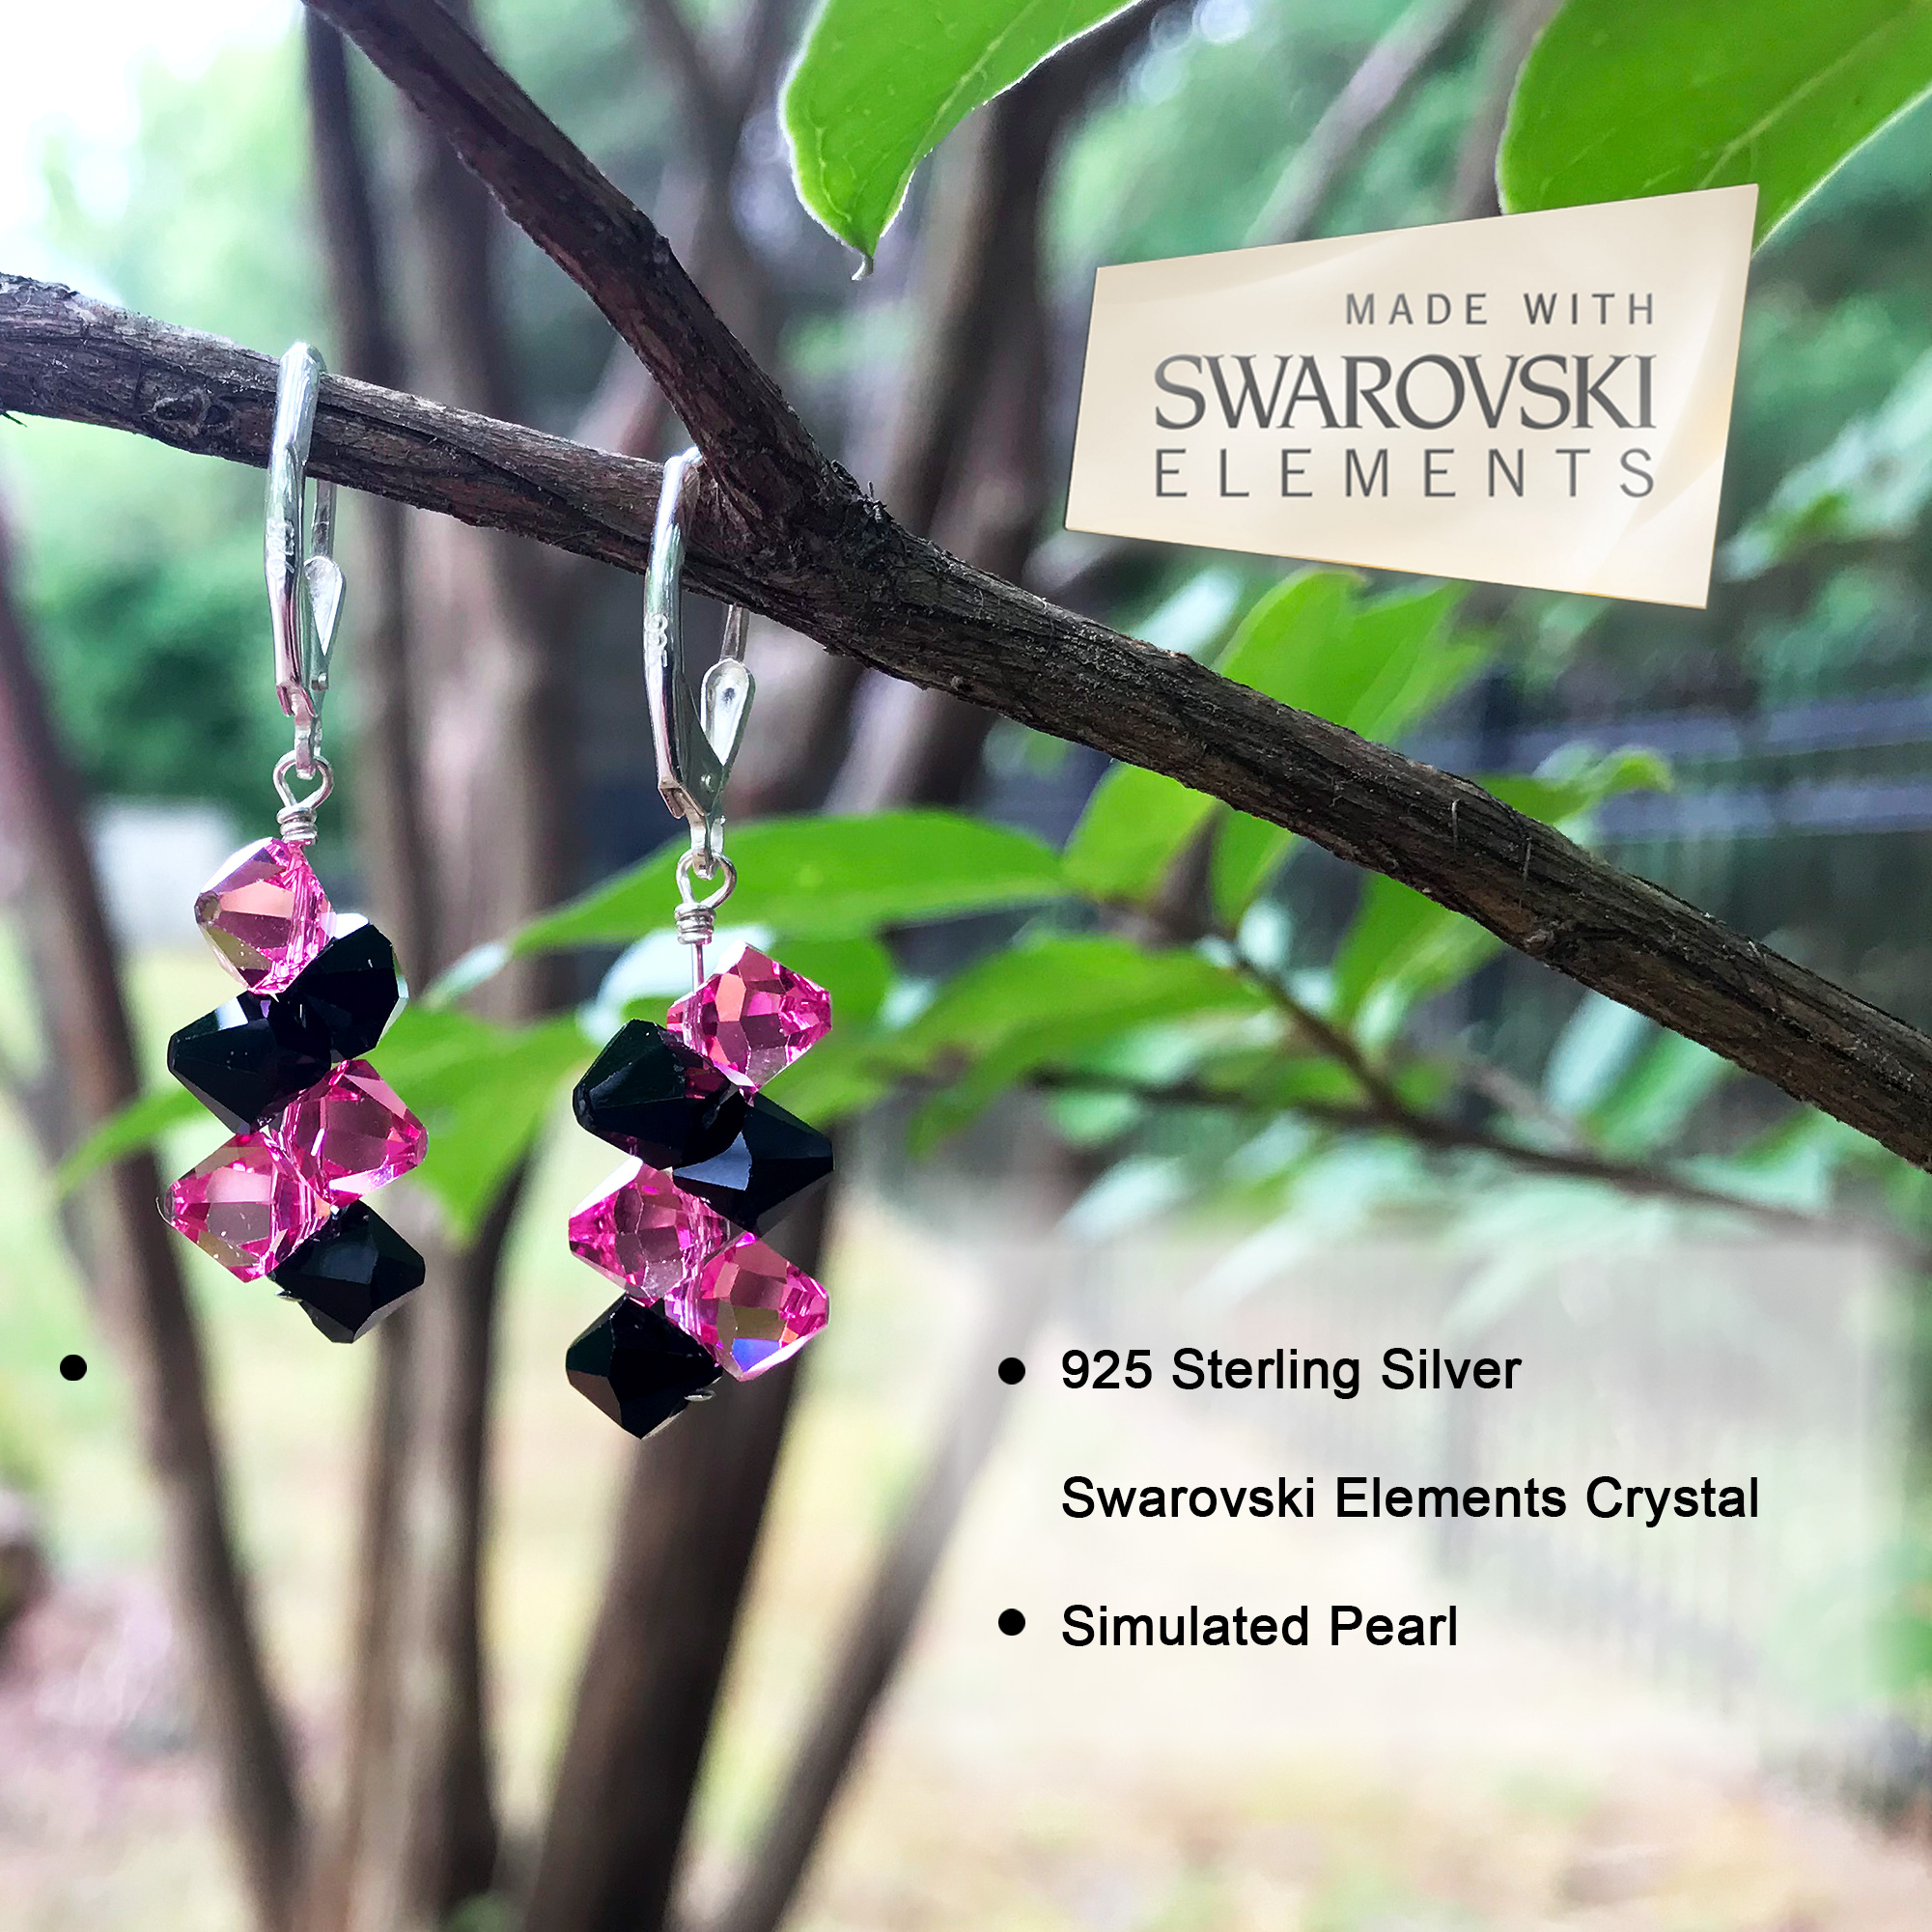 Made-with-Swarovski-Elements-Crystal-Drop-Sterling-Silver-Earrings thumbnail 41